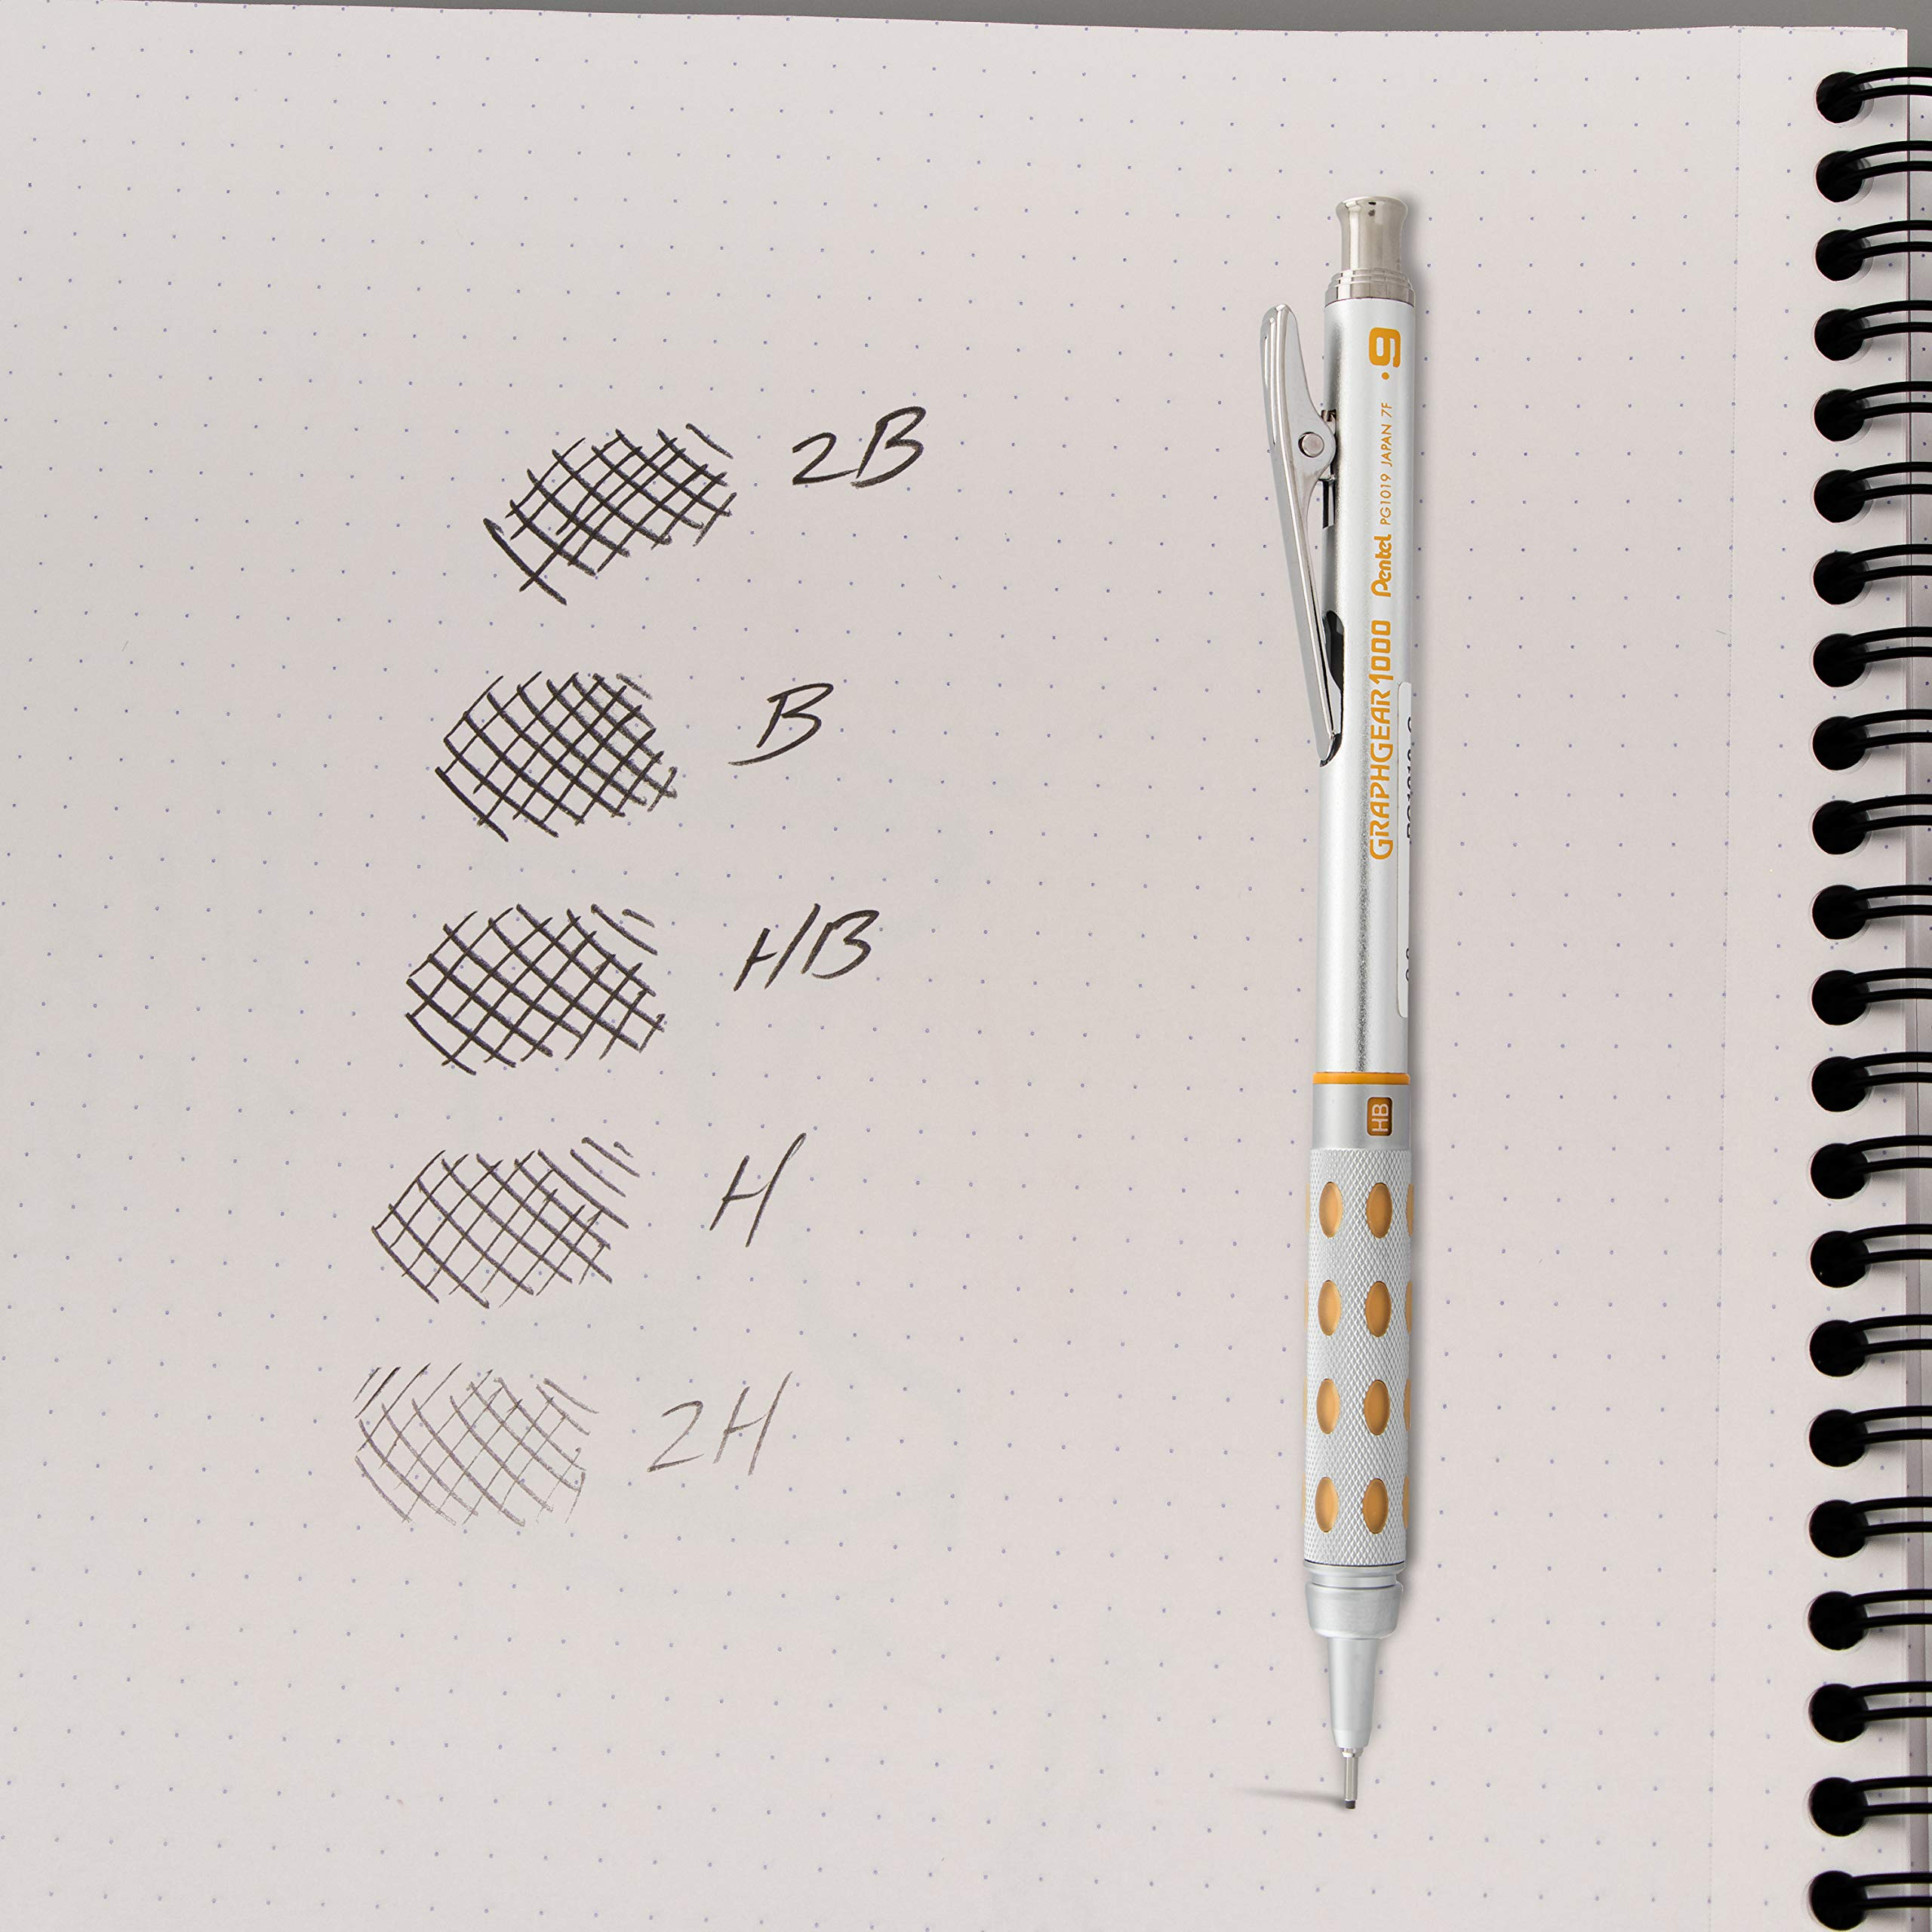 Pentel Super Hi-Polymer Lead Refill , 0.9 mm Thick, HB, 60 Pieces of Lead (C29BPHB2) by Pentel (Image #5)